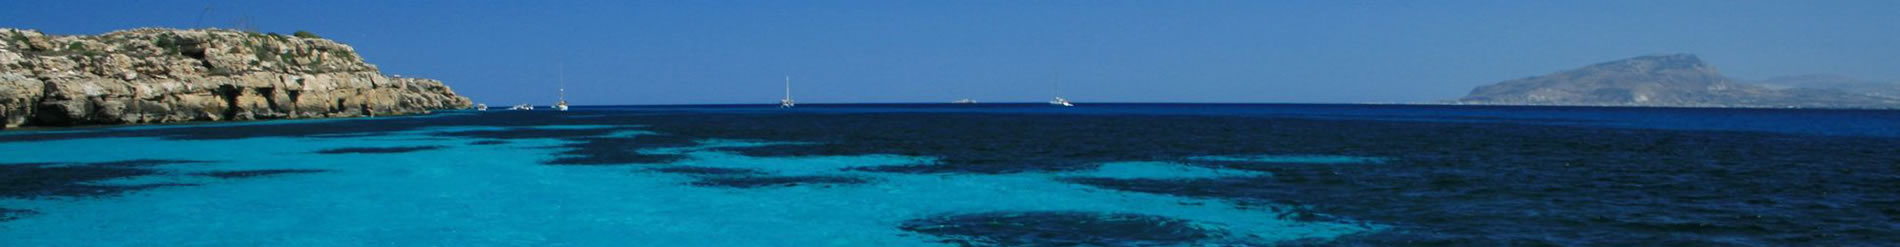 Offers of the hotel Isola Mia in Favignana